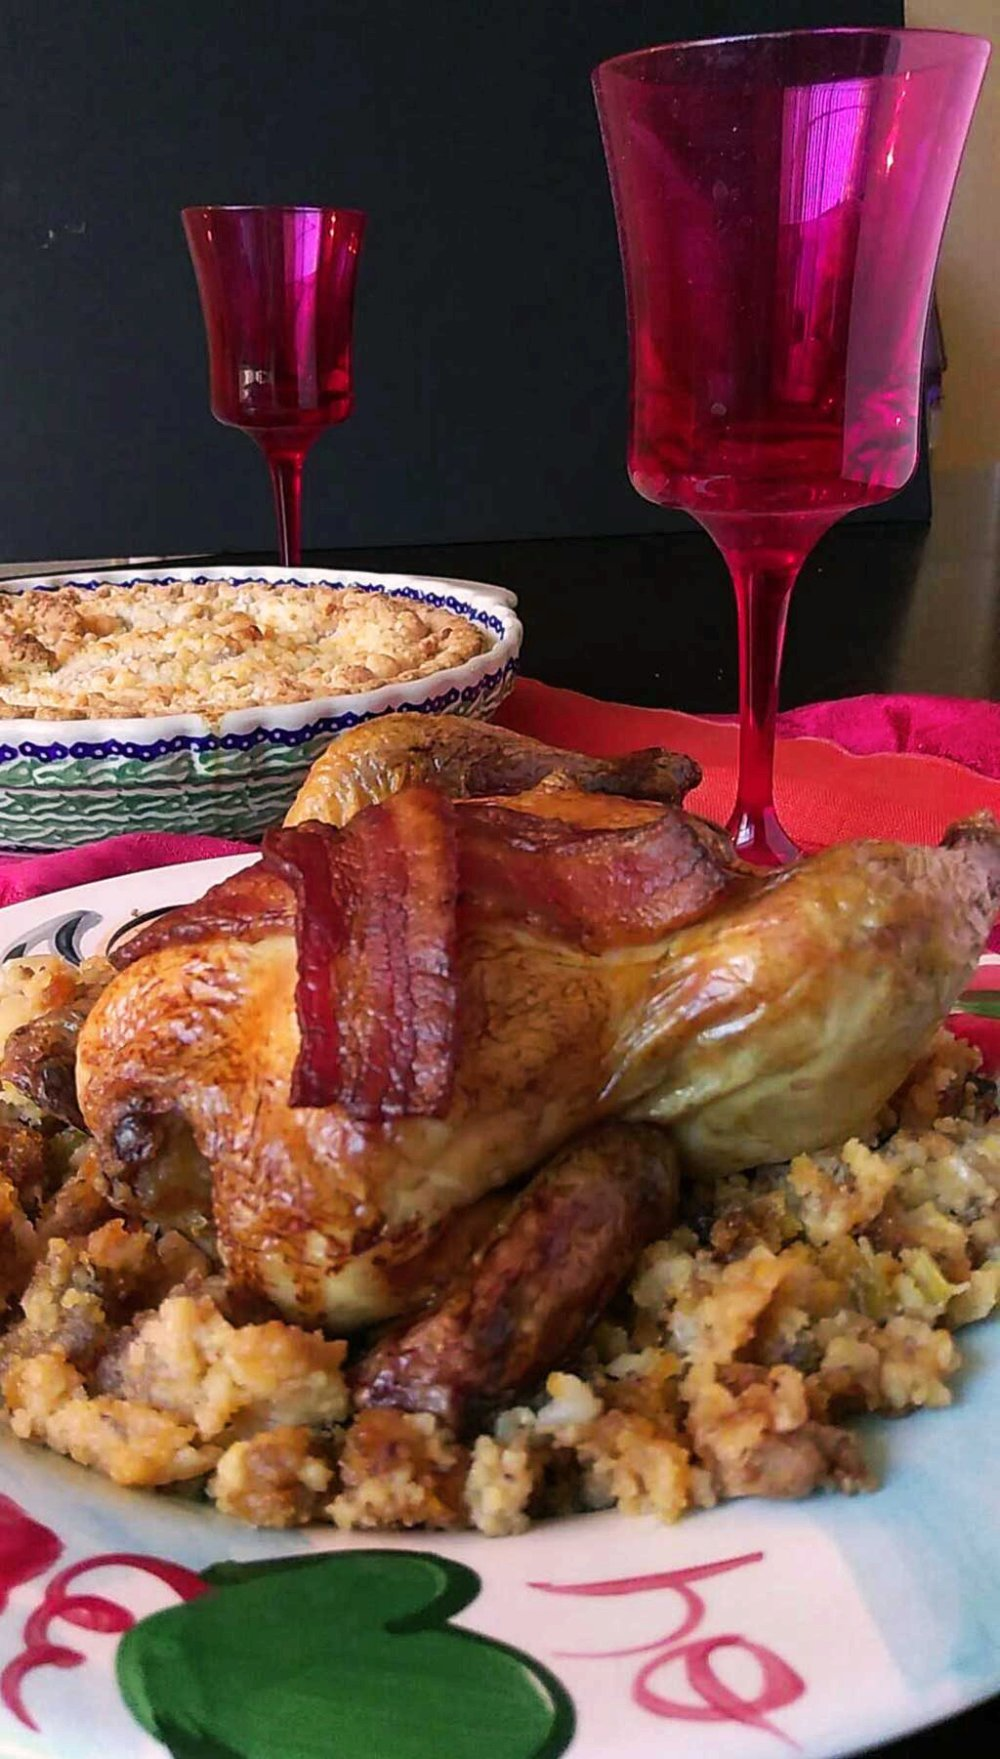 [ad] Cornish Hens with Sausage Stuffing - A Holiday dinner meal plan #LoveThisHolidayTwist